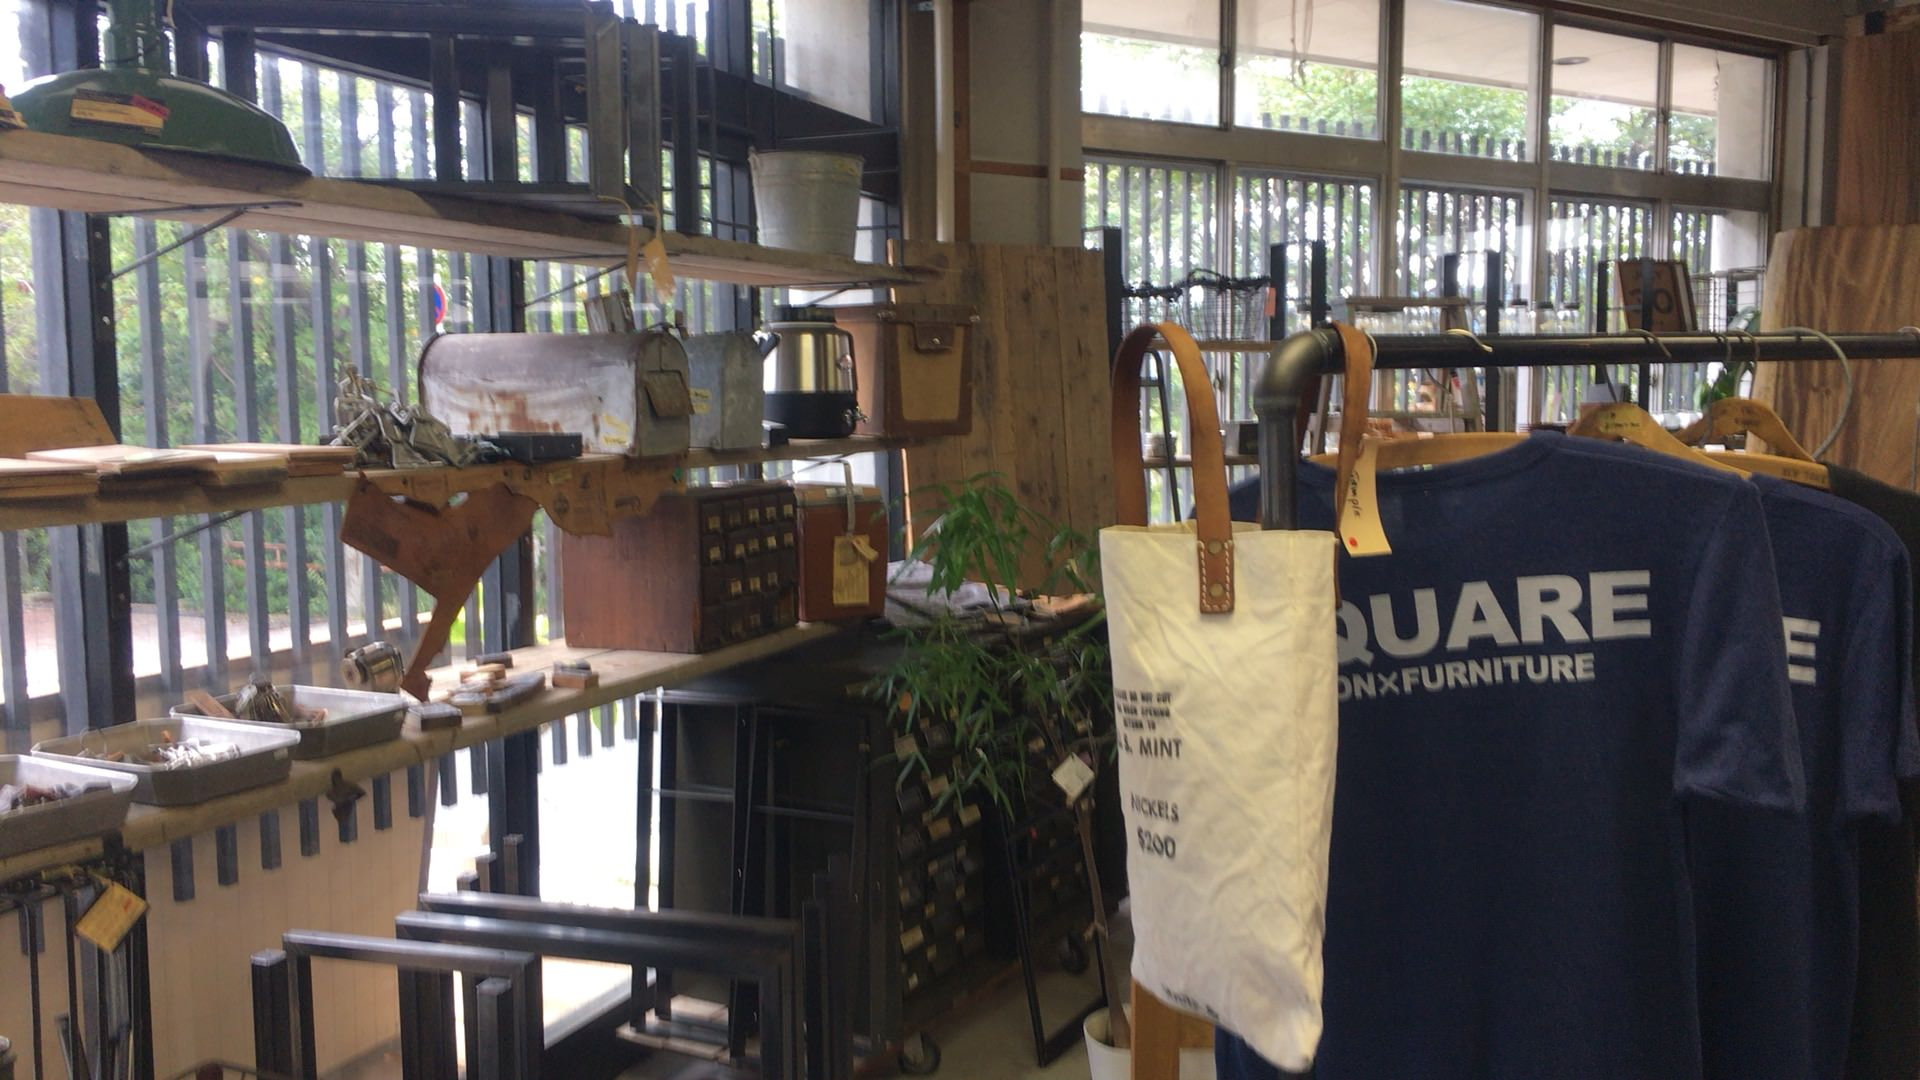 SQUARE FURNITURE+FACTORY+VINTAGE+CAFE 内観